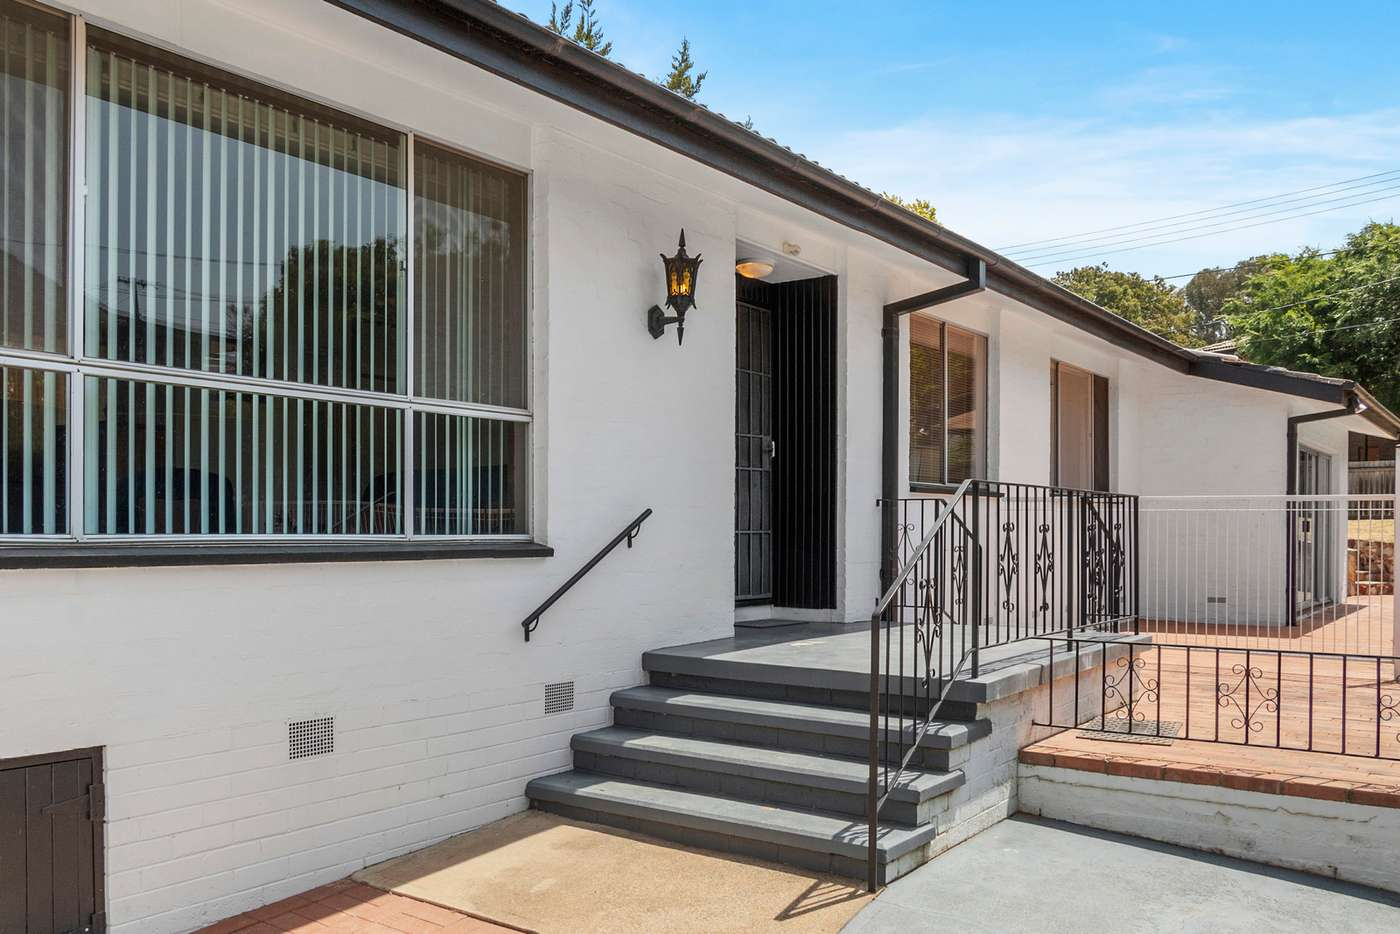 Main view of Homely house listing, 45 Cargelligo Street, Duffy, ACT 2611